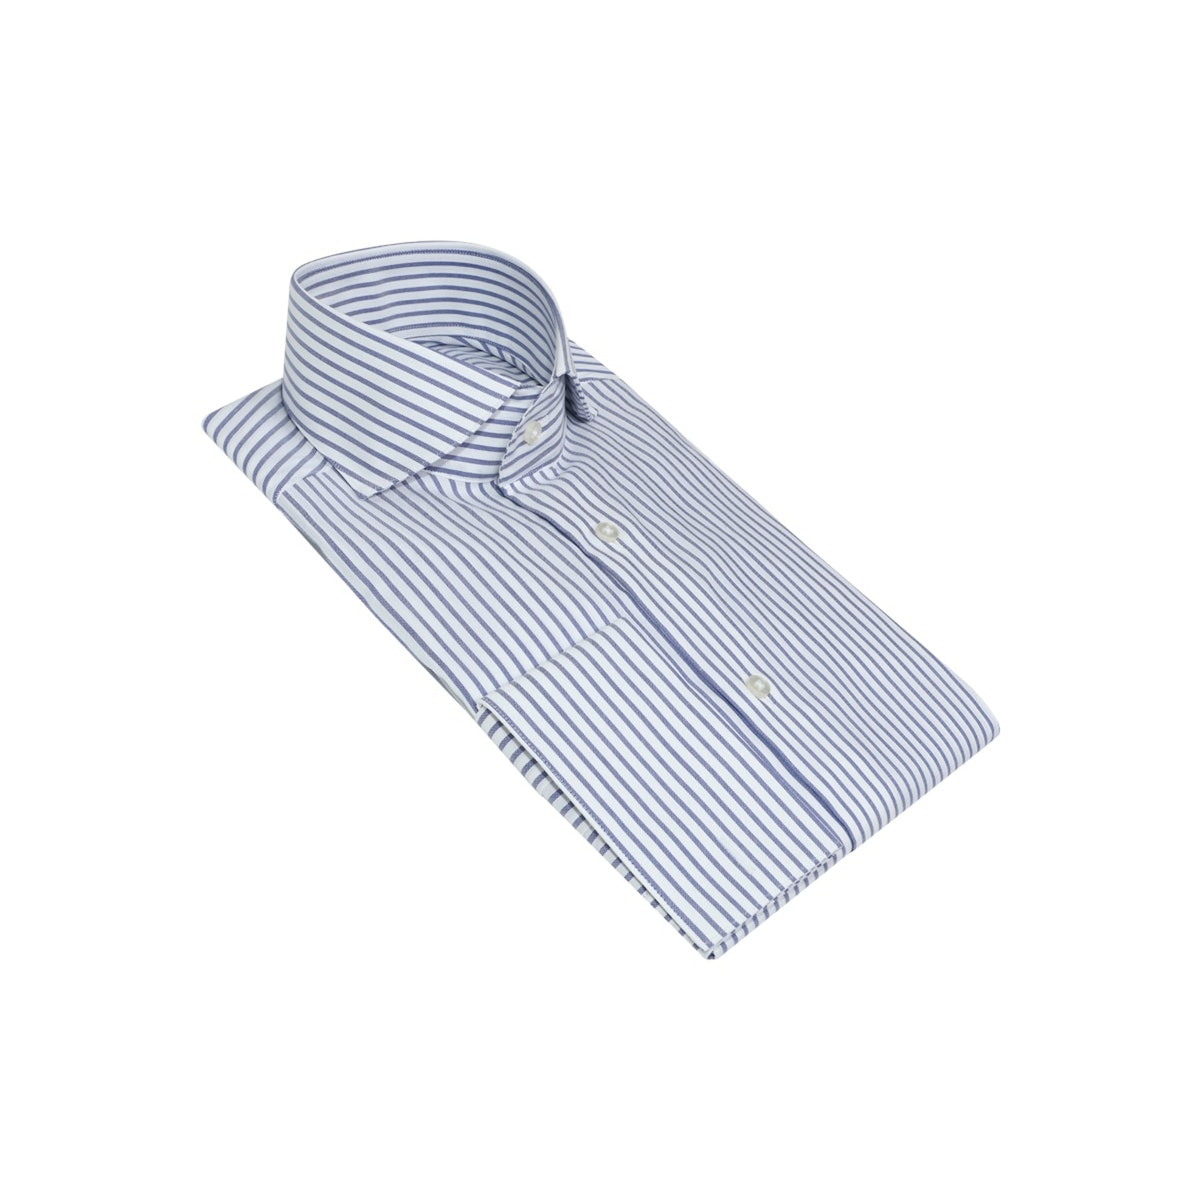 InStitchu Collection The Cowley Blue Striped Shirt